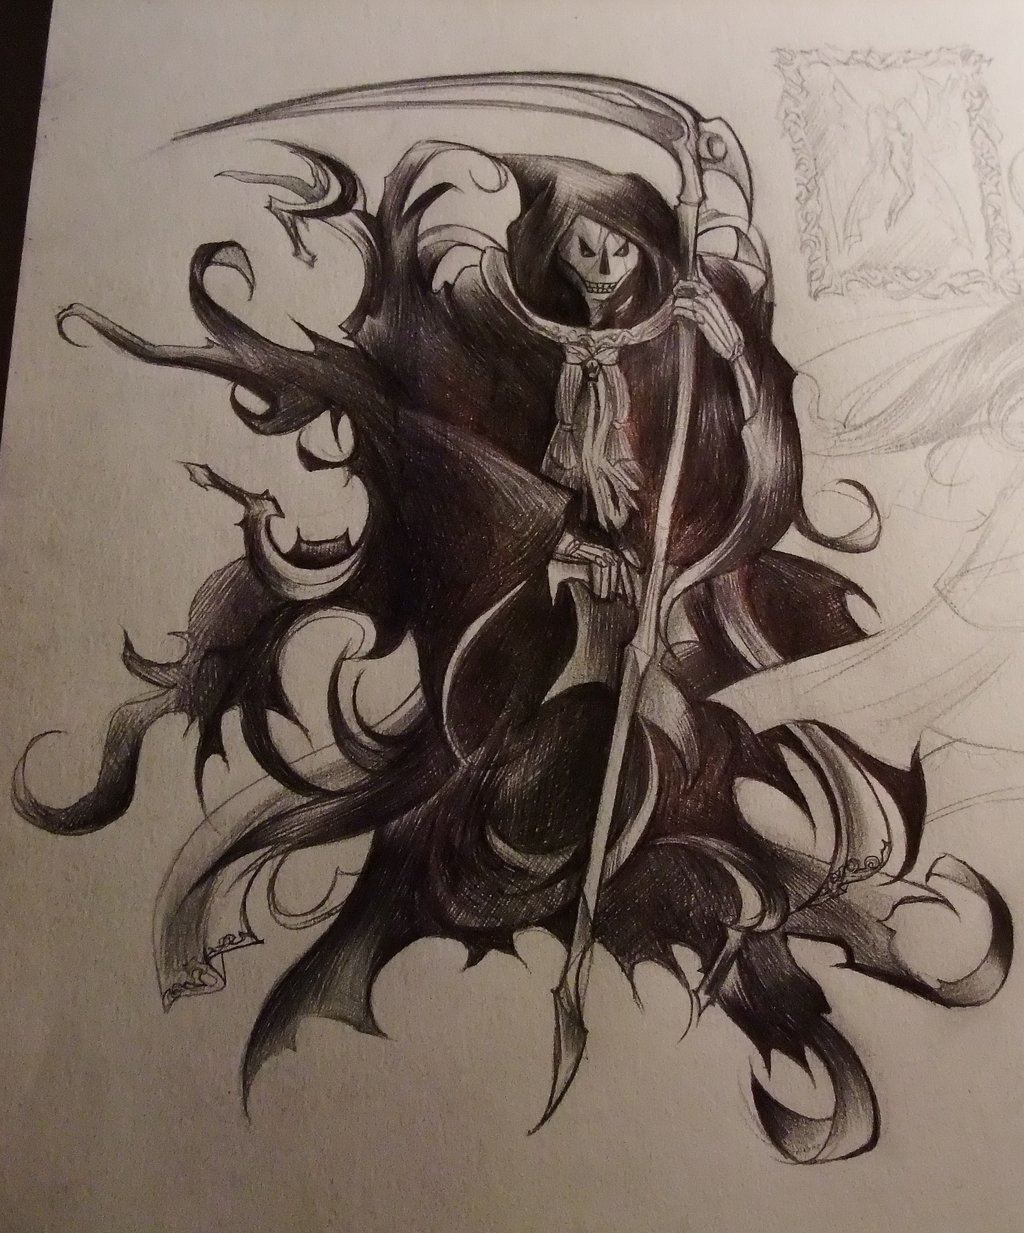 Drawn grim reaper robe Lydween The DeviantArt The Reaper